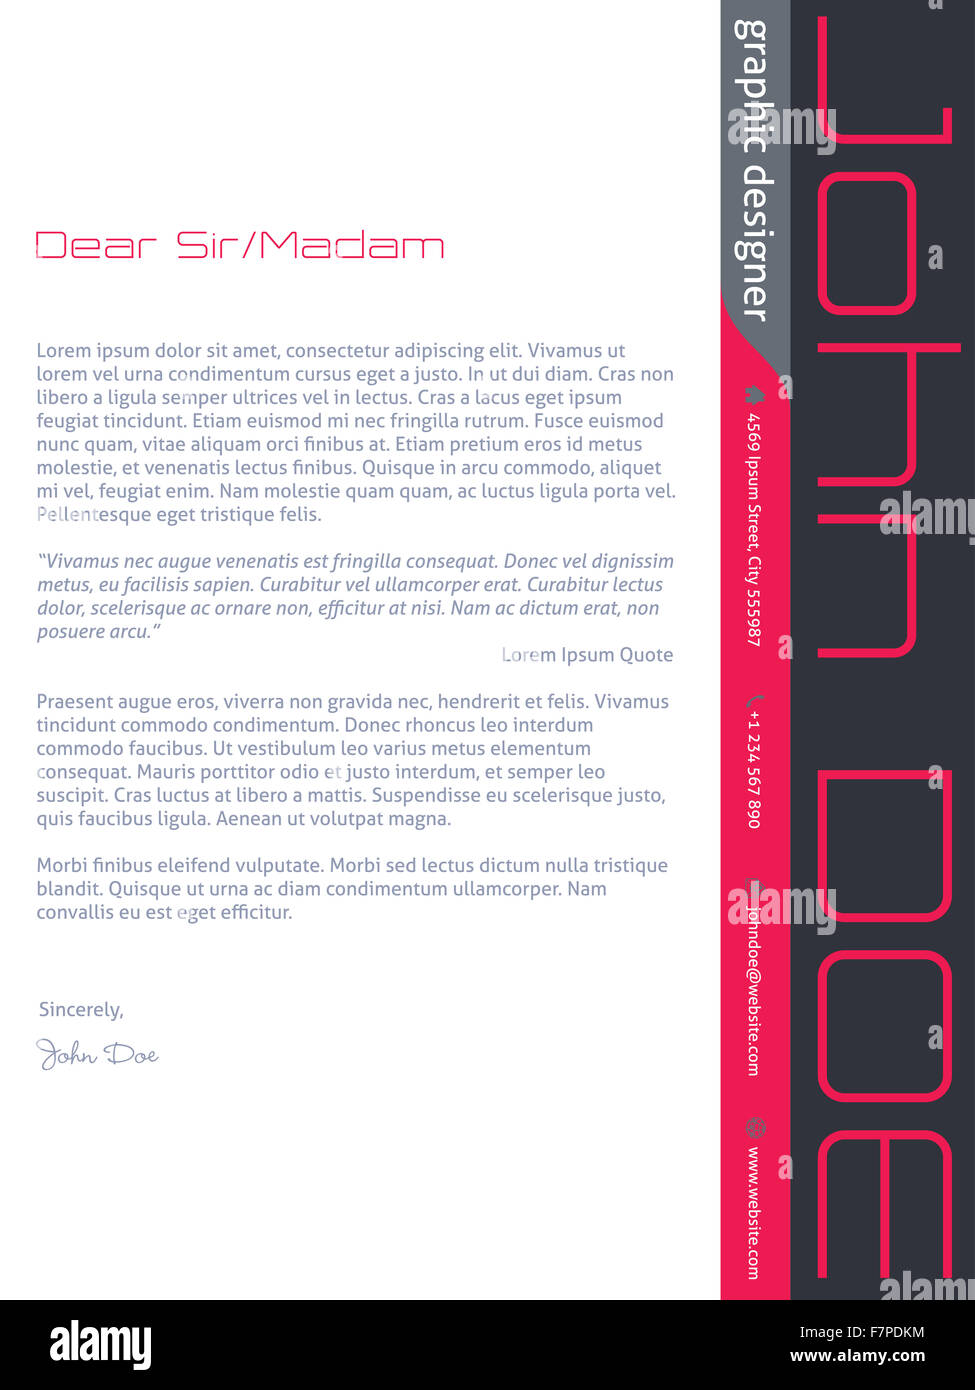 Modern cover letter cv resume template design in pink gray ... on letter design objects, letter design examples, letter design stencils, letter design christmas, letter design paper, letter design ideas, letter design fonts, letter design cards, letter design printables, letter typography, letter g designs, letter design drawings, letter design clipart, letter t designs, letter design logos, letter design help,